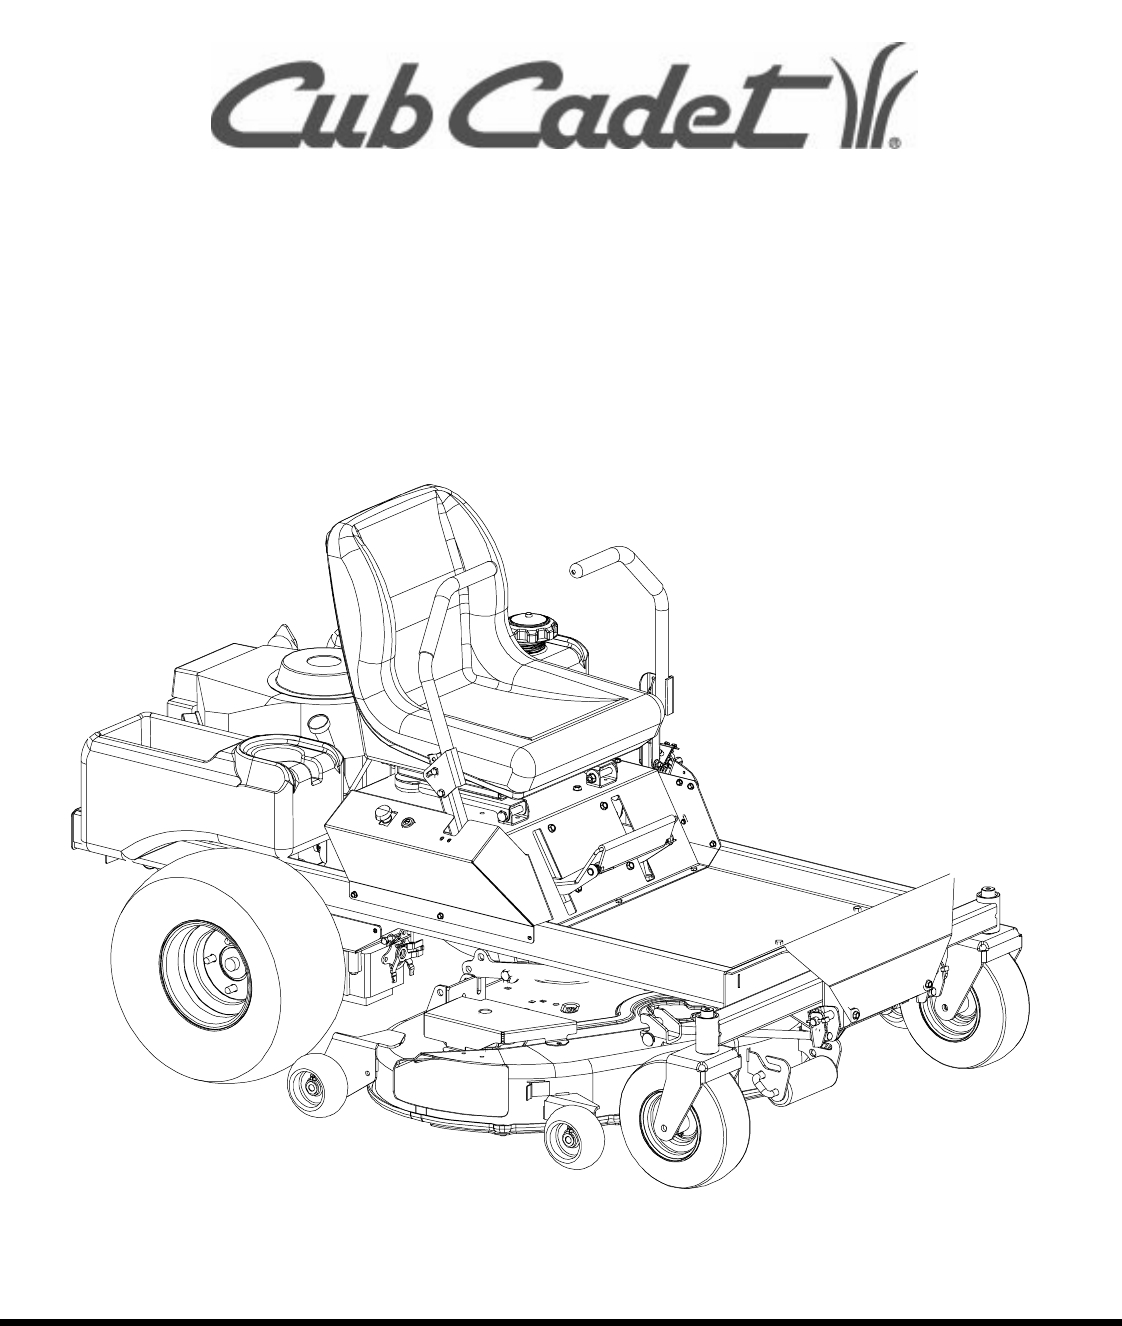 Cub Cadet Lawn Mowers 53Aa5D2L100 Pdf Parts List Free